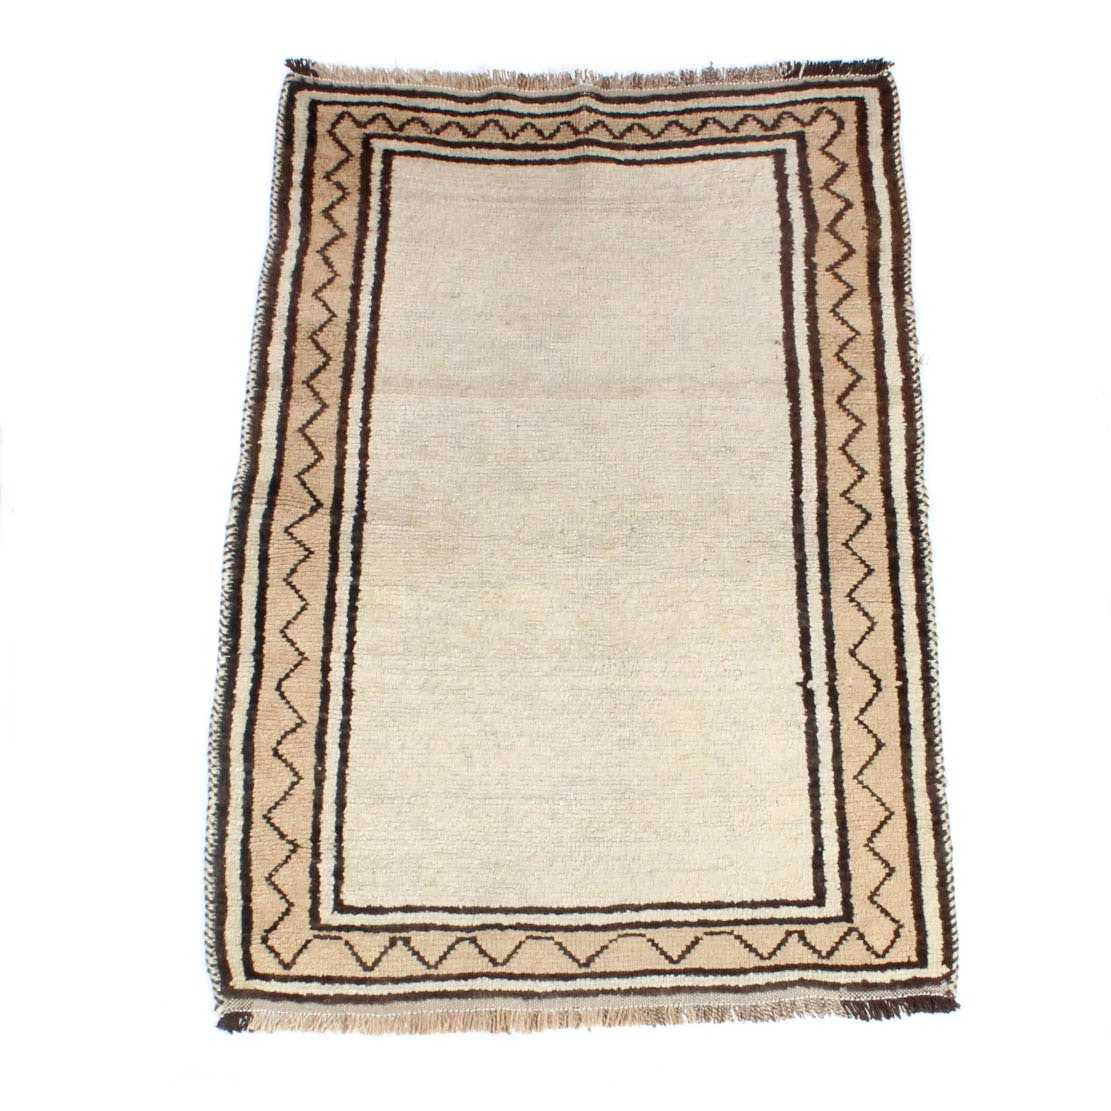 3' x 4' Semi-Antique Hand-Knotted Persian Gabbeh Rug